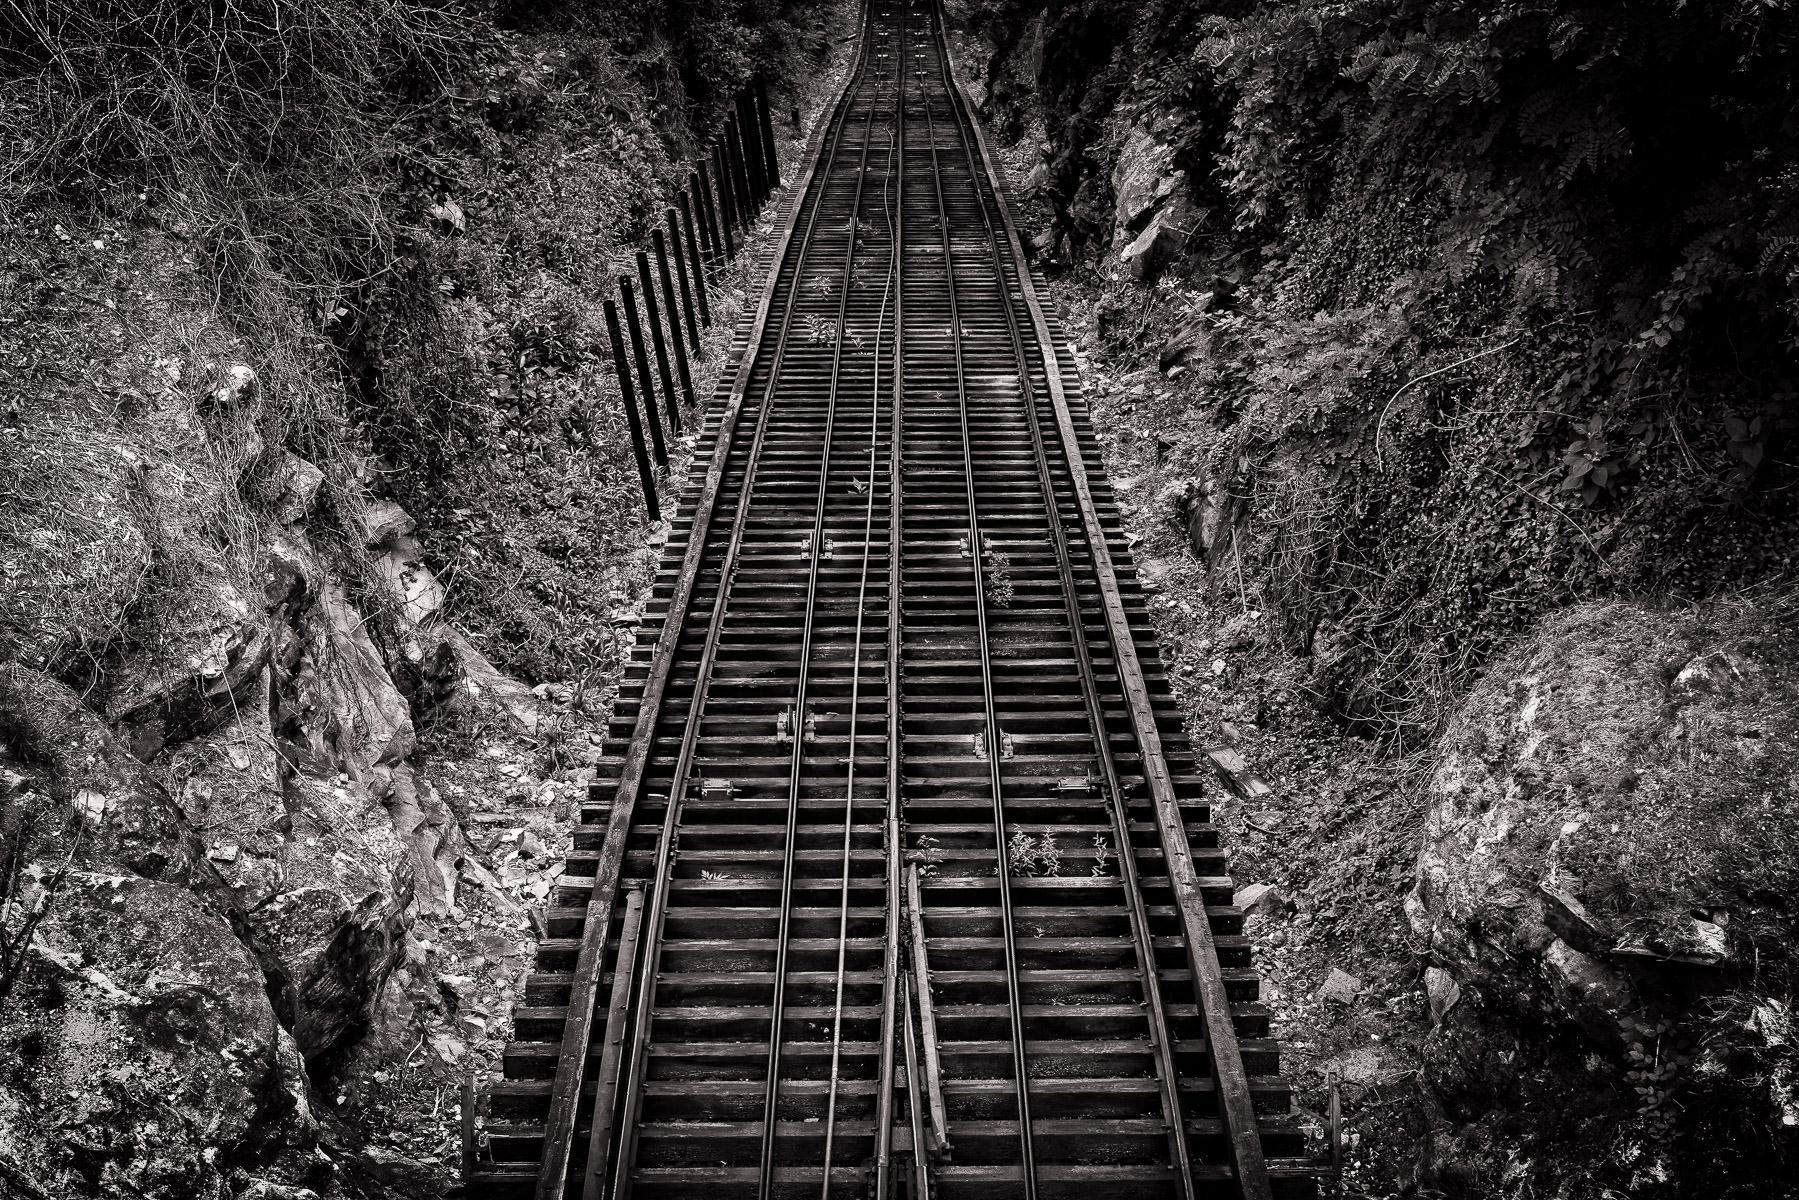 A section of track on the Lookout Mountain Incline Railway, Chattanooga, Tennessee.